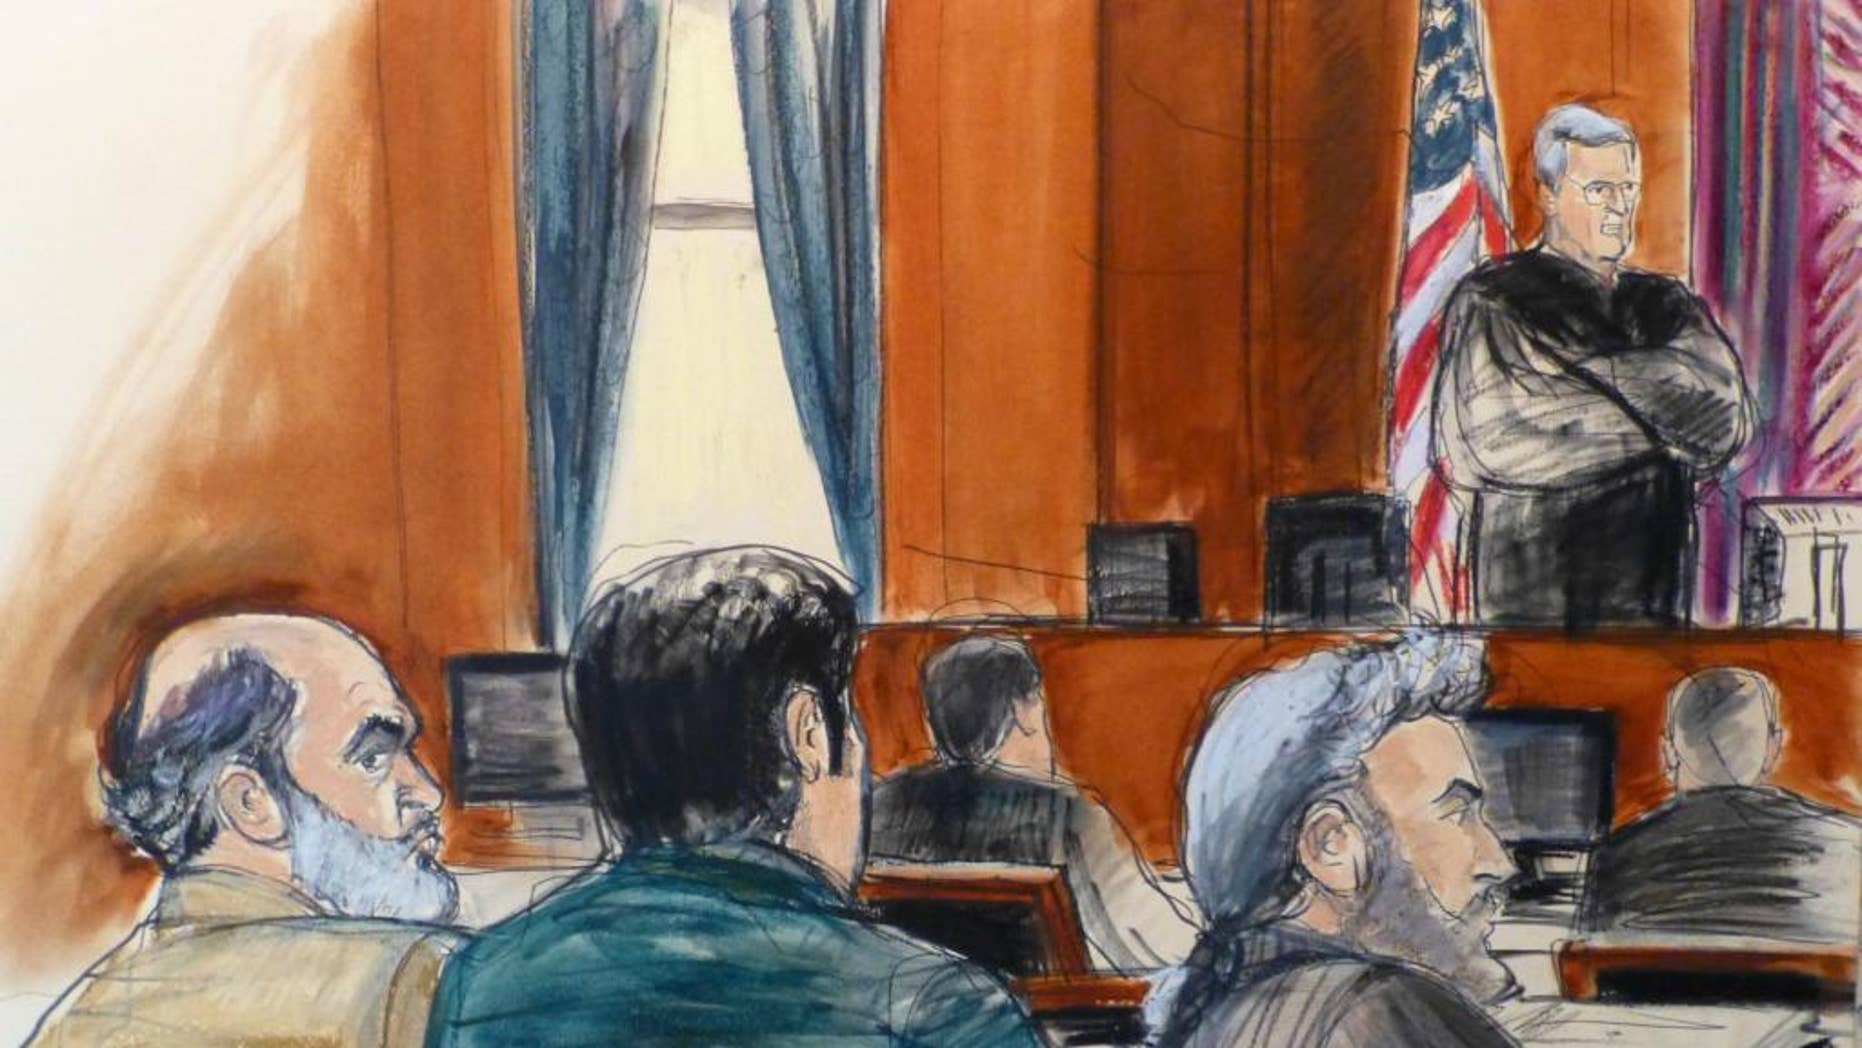 In this courtroom sketch, Sulaiman Abu Ghaith, left, listens as U.S. District Judge Lewis A. Kaplan stands to speak Monday, March 3, 2014 during jury selection at the start of Abu Ghaith's trial in New York on charges that he conspired to kill Americans and support terrorists in his role as al-Qaida's spokesman after the Sept. 11 attacks. Abu Ghaith is Osama bin Laden's son-in-law and is  the highest-ranking al-Qaida figure to face trial on U.S. soil since the Sept. 11 attacks. Seated next to Abu Ghaith is a translater, next to defense attorney Stanley Cohen, right. (AP Photo/Elizabeth Williams)